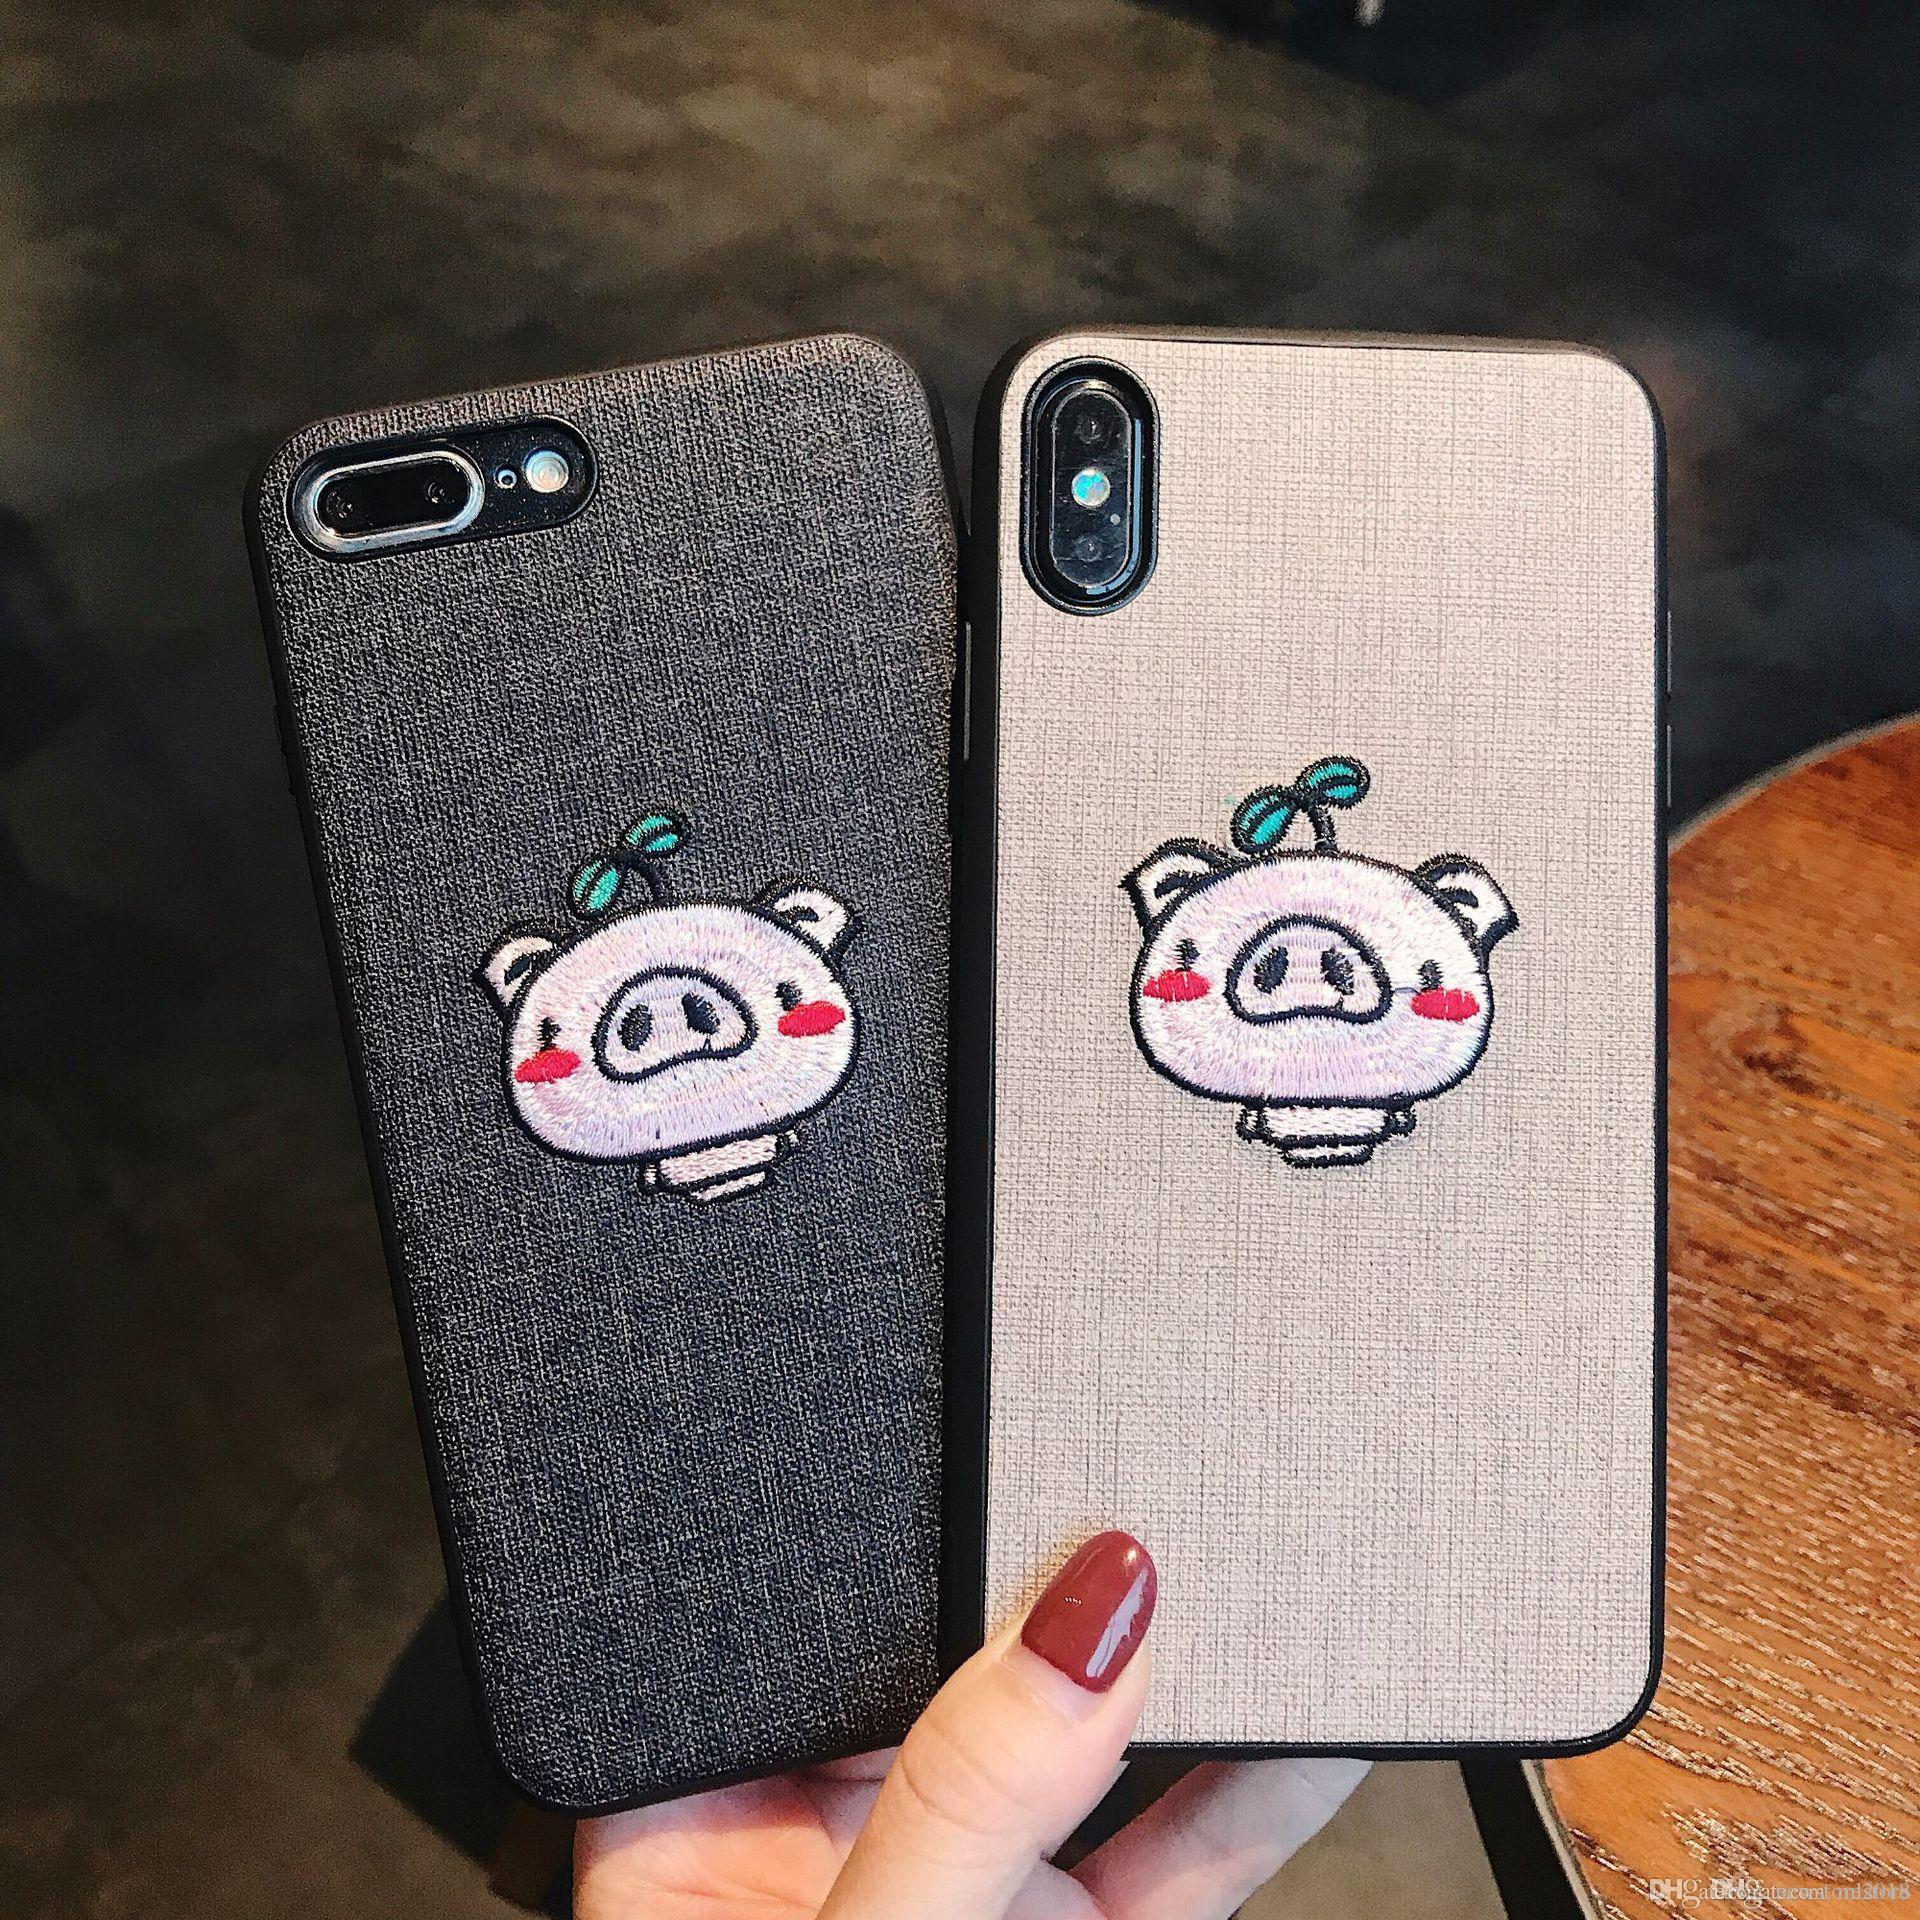 reputable site ef5ea a97d2 Lovers cute phone case for iphoneXs Max soft Embroidery pig animal case  covers Anti fall phone cases for IPhone7PLus/8Plus for IPhone Xr